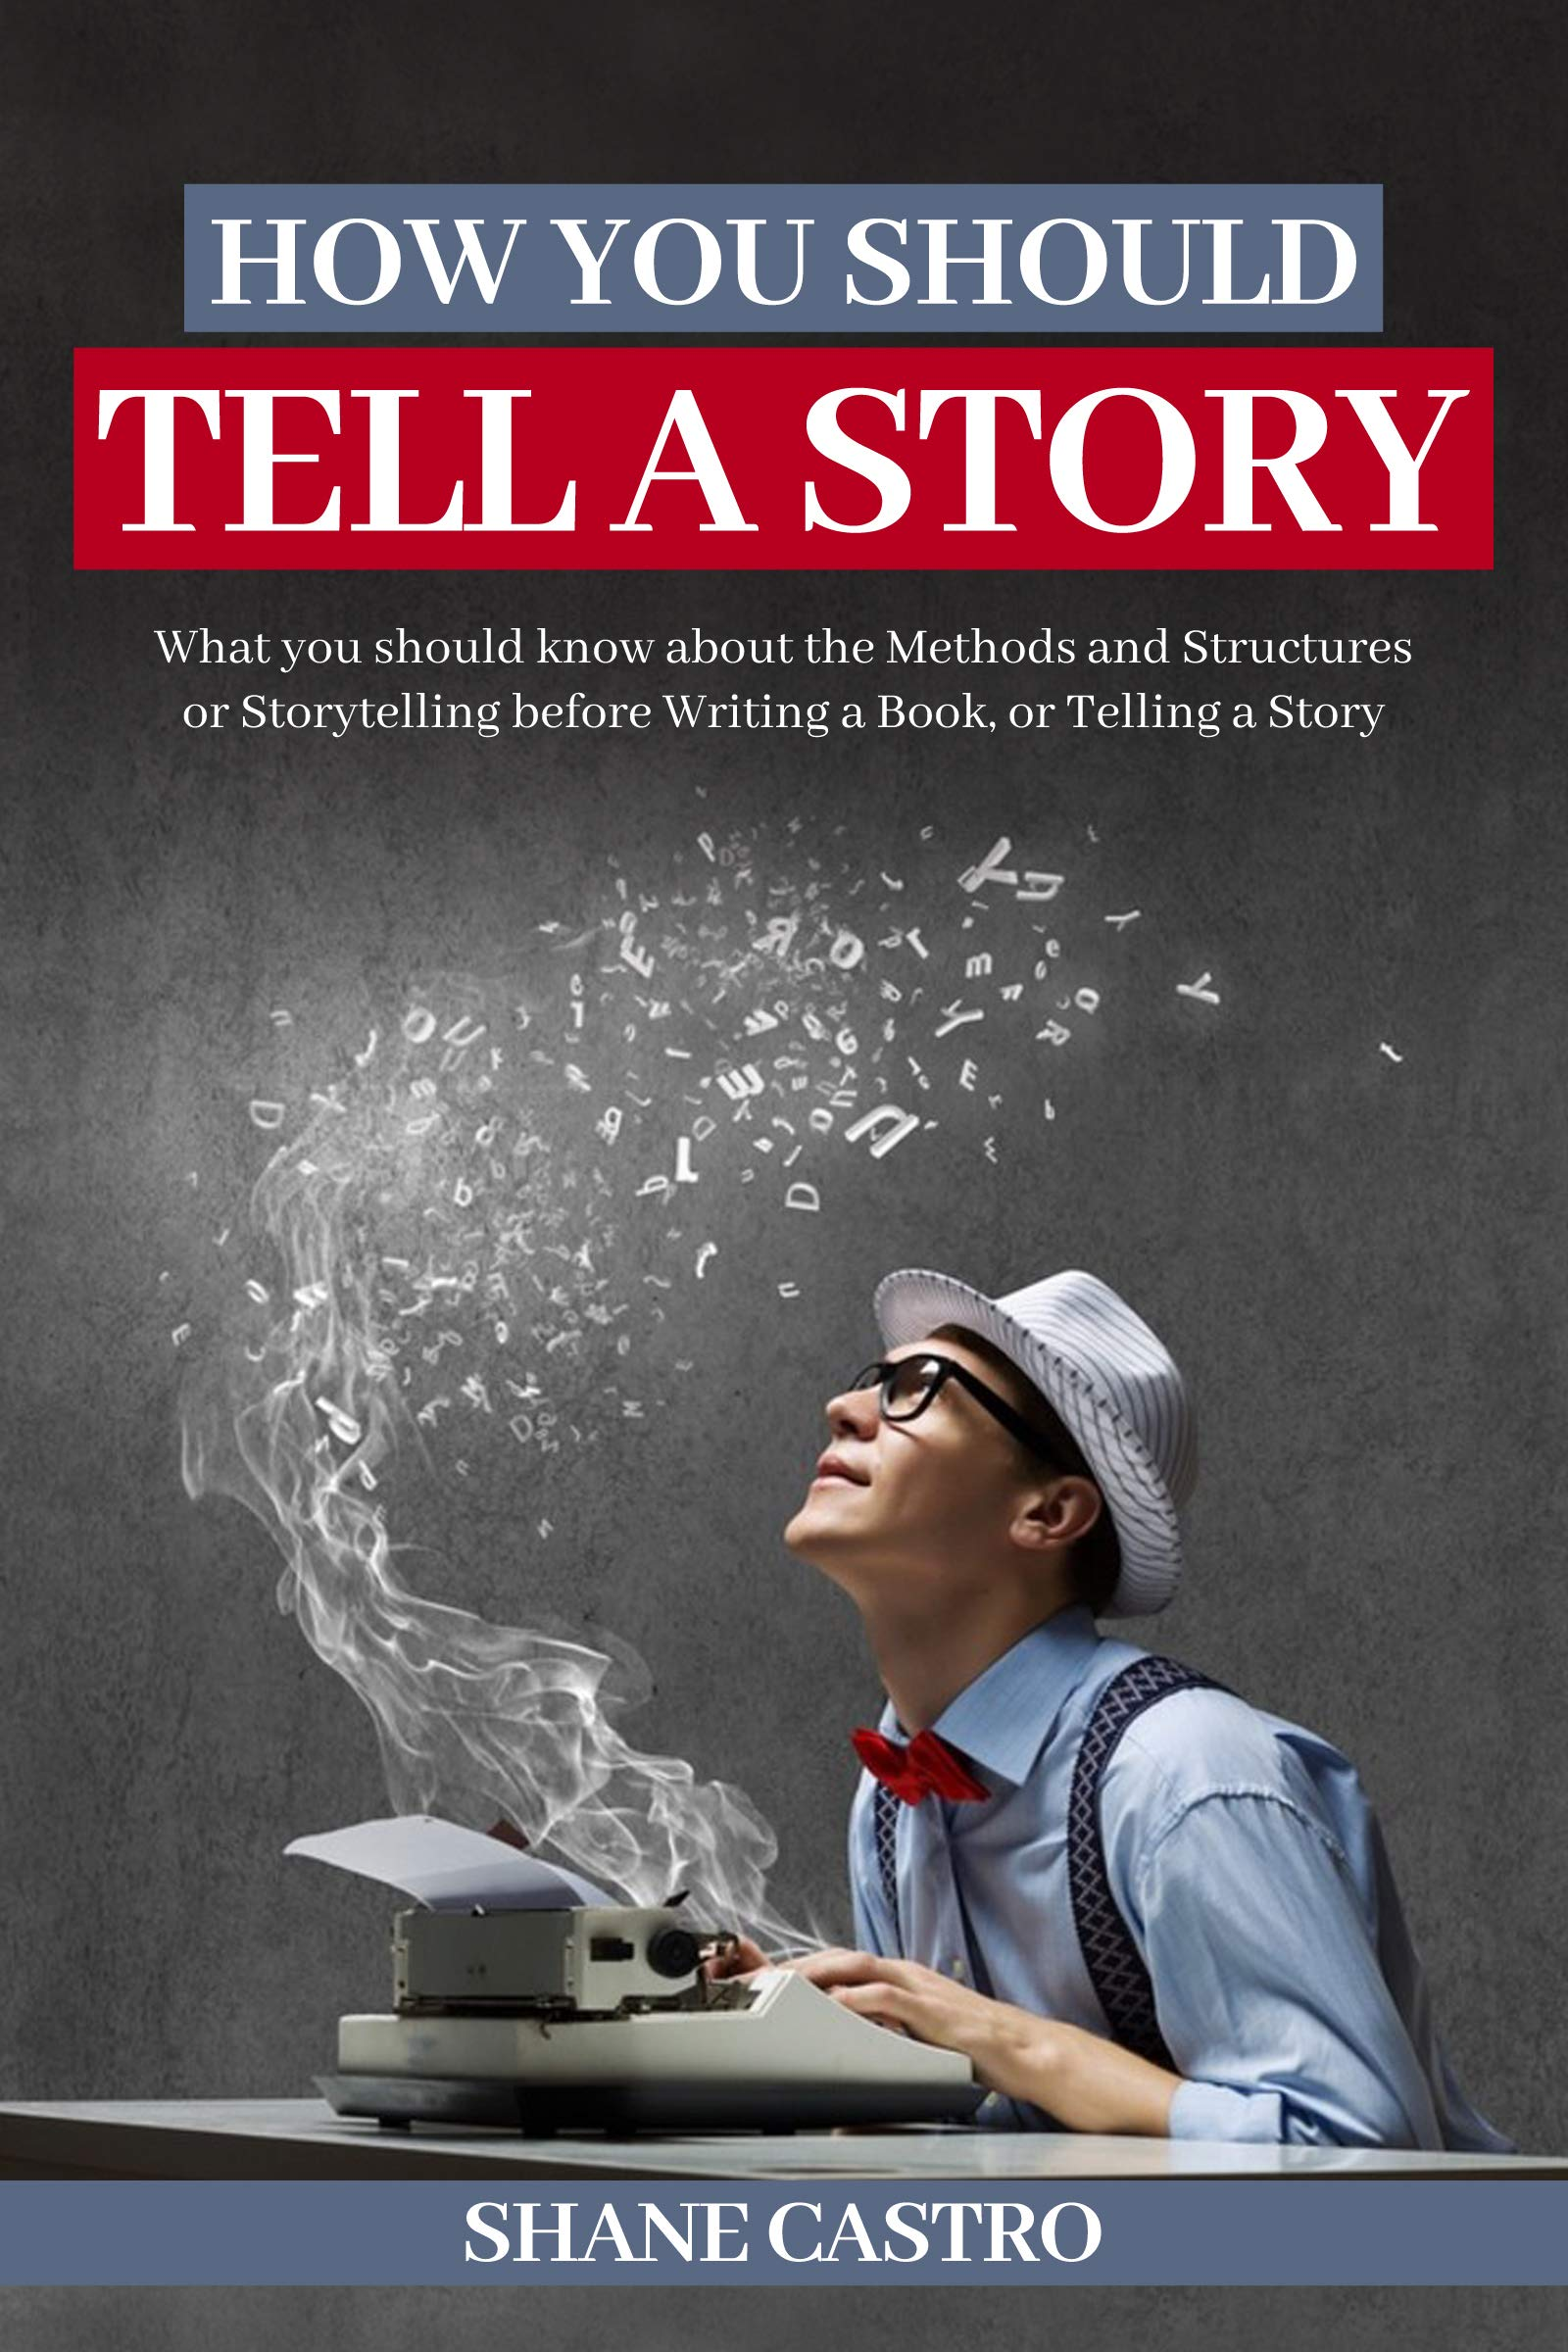 How You Should Tell a Story: What you should know about the Methods and Structures of Storytelling before Writing a Book, or Telling a Story